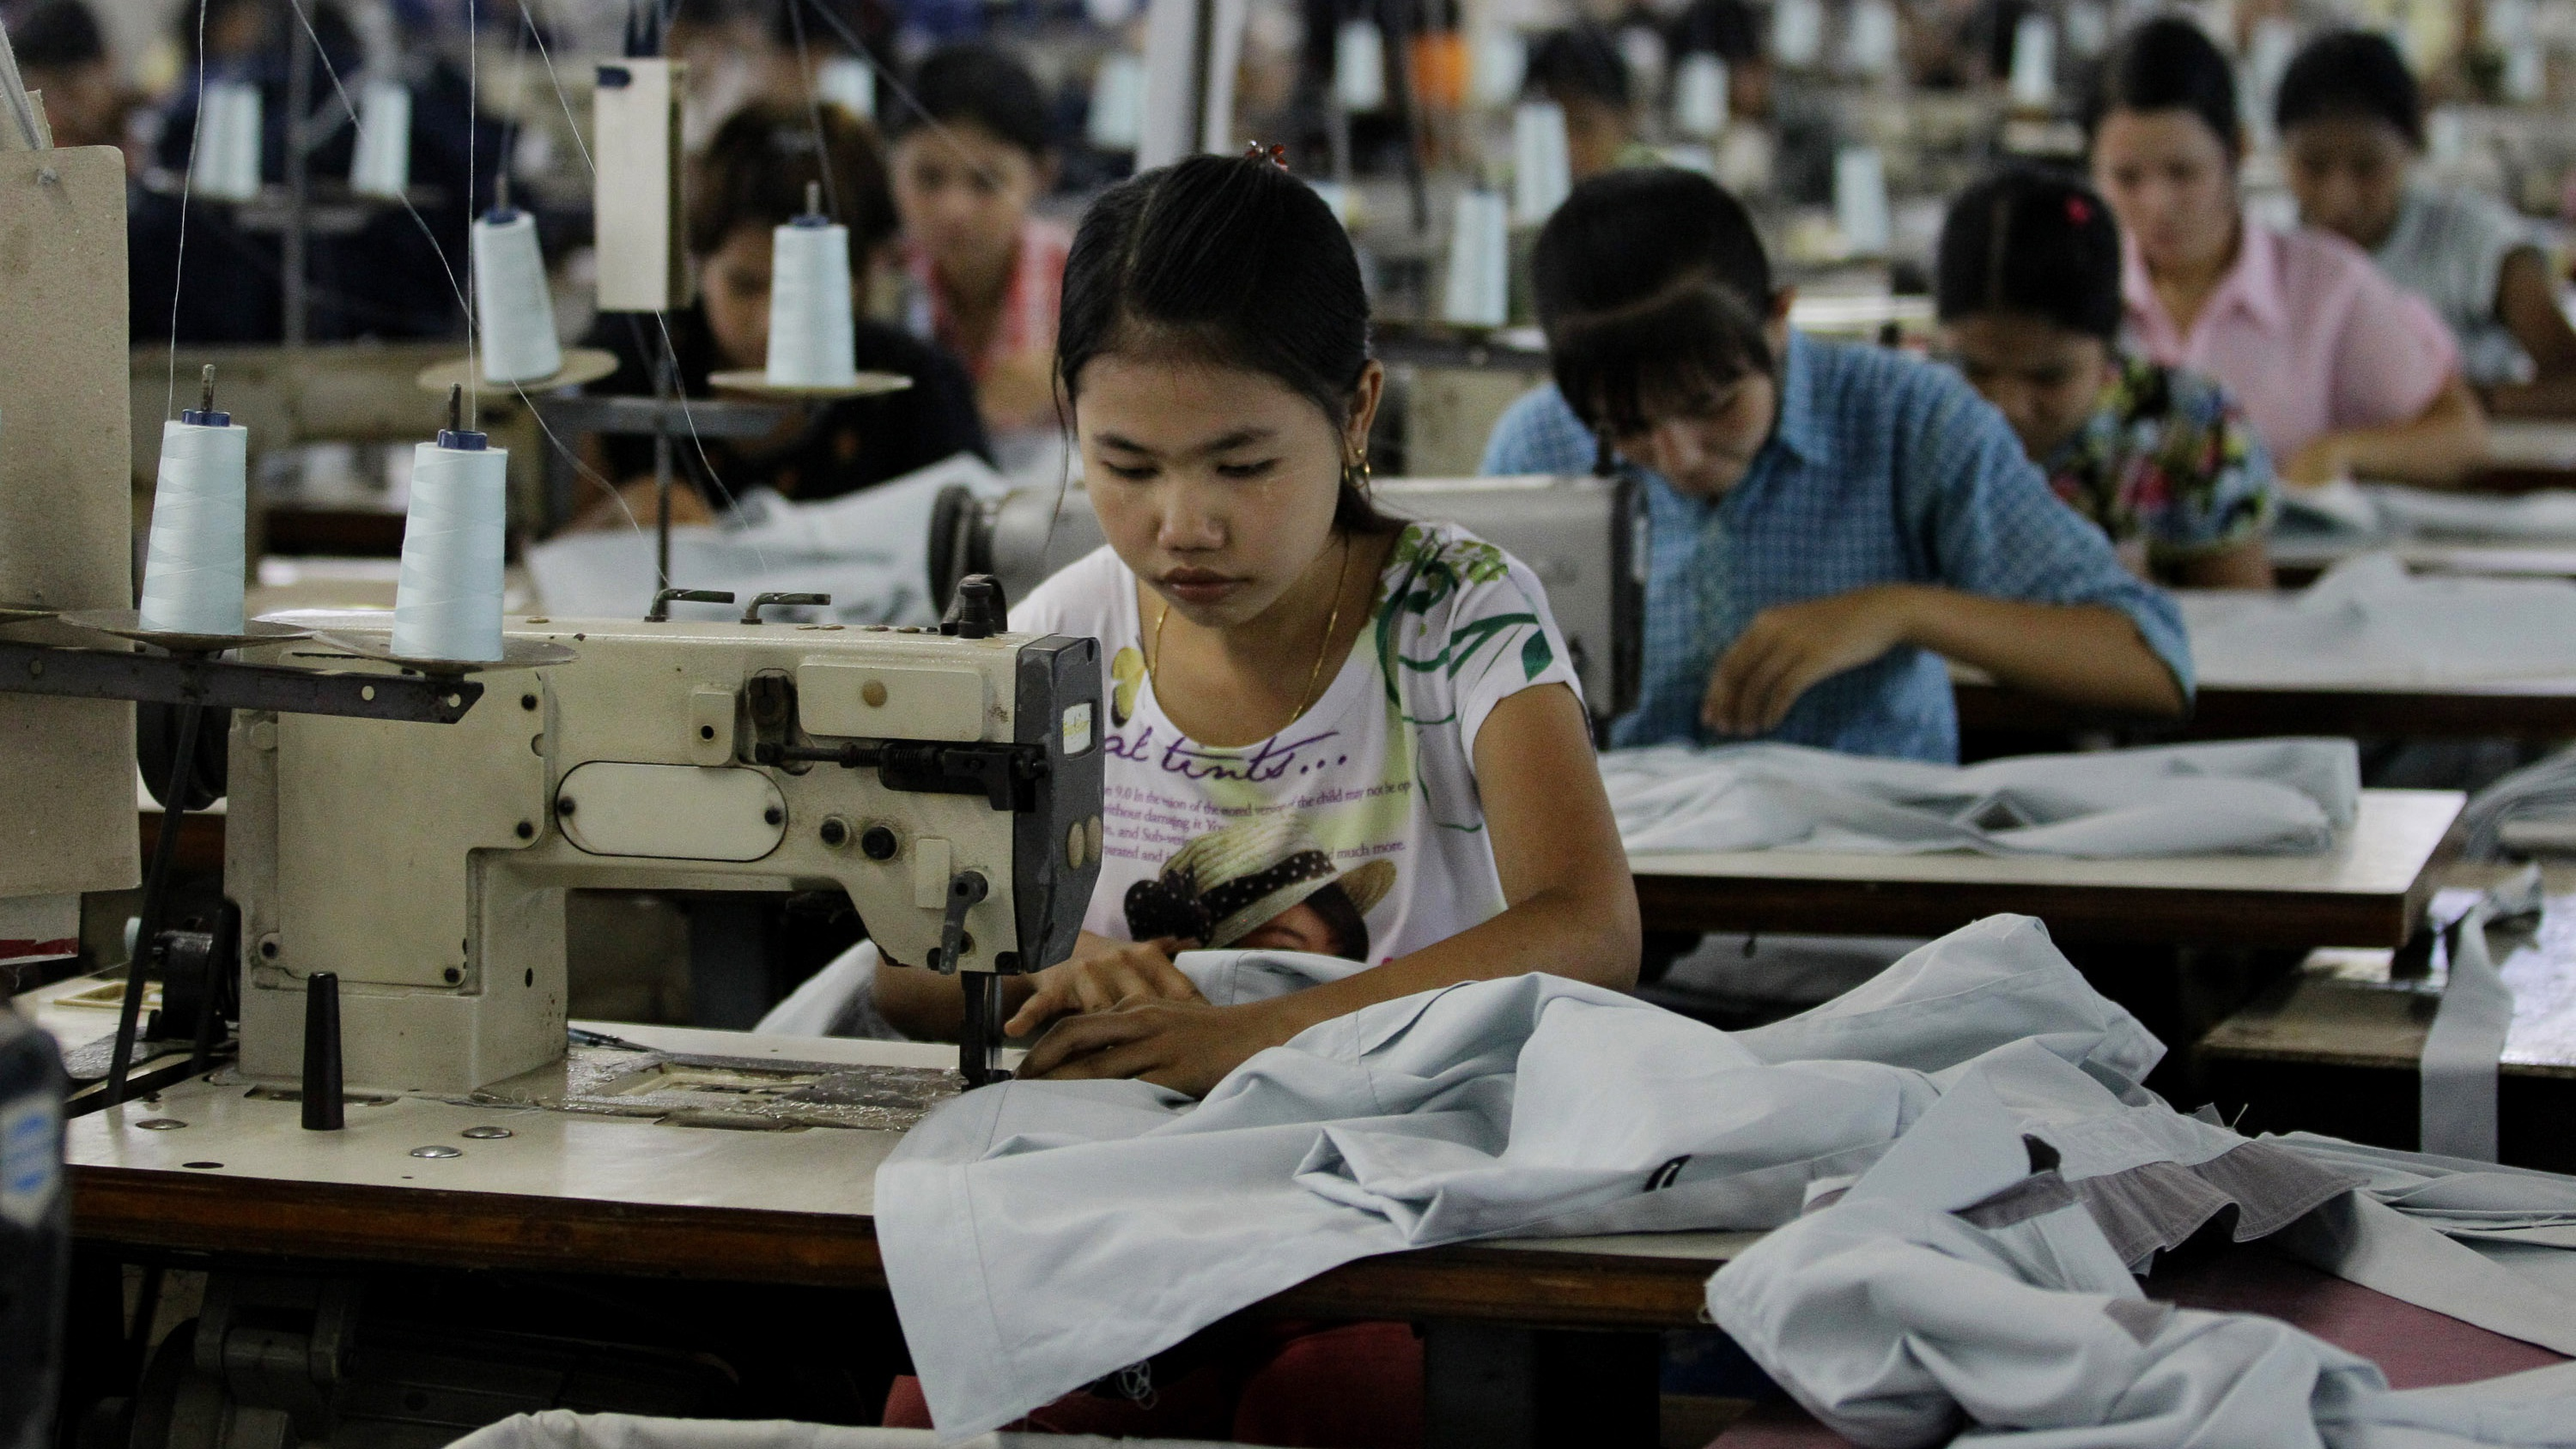 Hmb H Amp M Reportedly Used Garment Factories That Worked 14